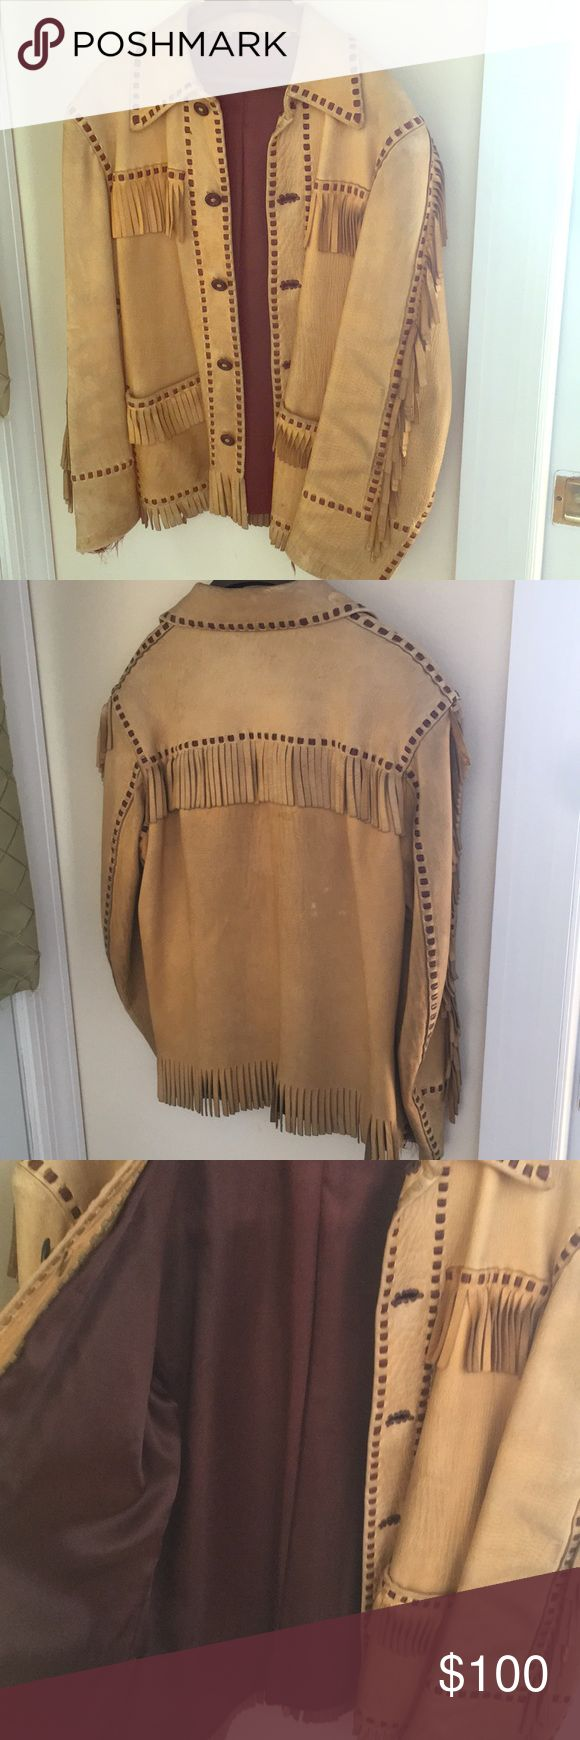 Vintage leather fringe western jacket Vintage leather fringe western jacket. This is an antique and does have some ware and tear on it. Some staining on leather and some loose thread on cuff of jacket. Small/medium fit for a women. This jacket tells a story. Make me an offer ! Jackets & Coats